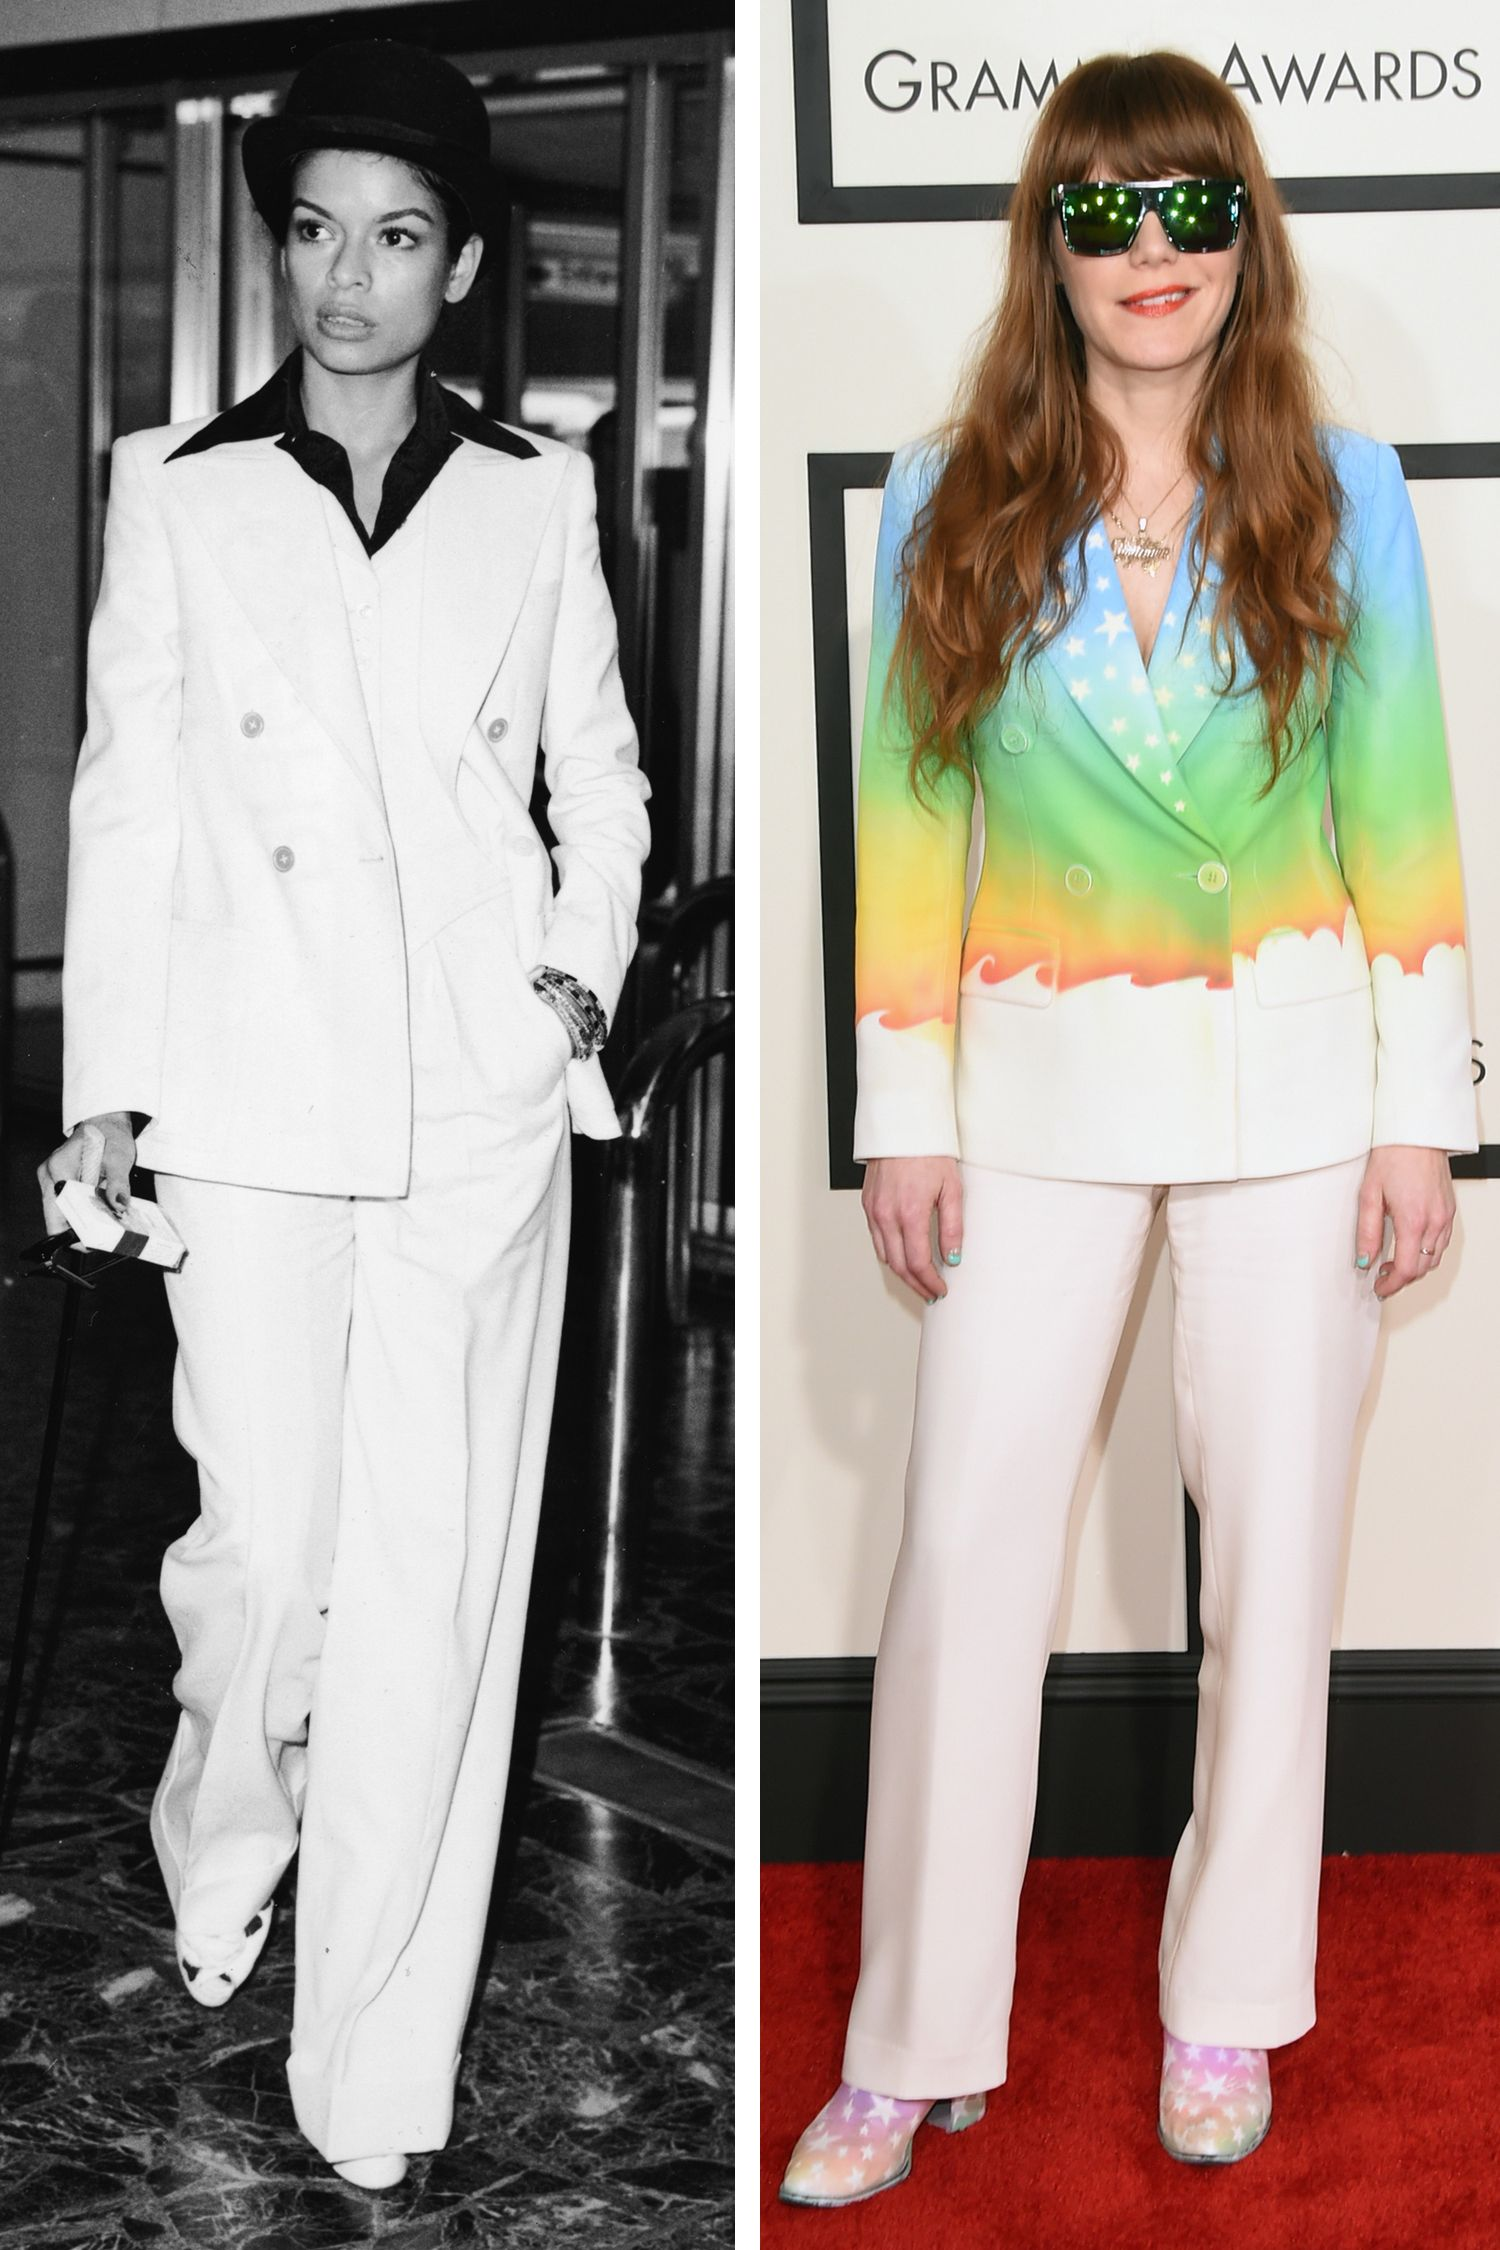 bb3a6cddb5 15 Best 70s Fashion Trends Worn by Celebrities - 1970s Outfit Ideas for  Women